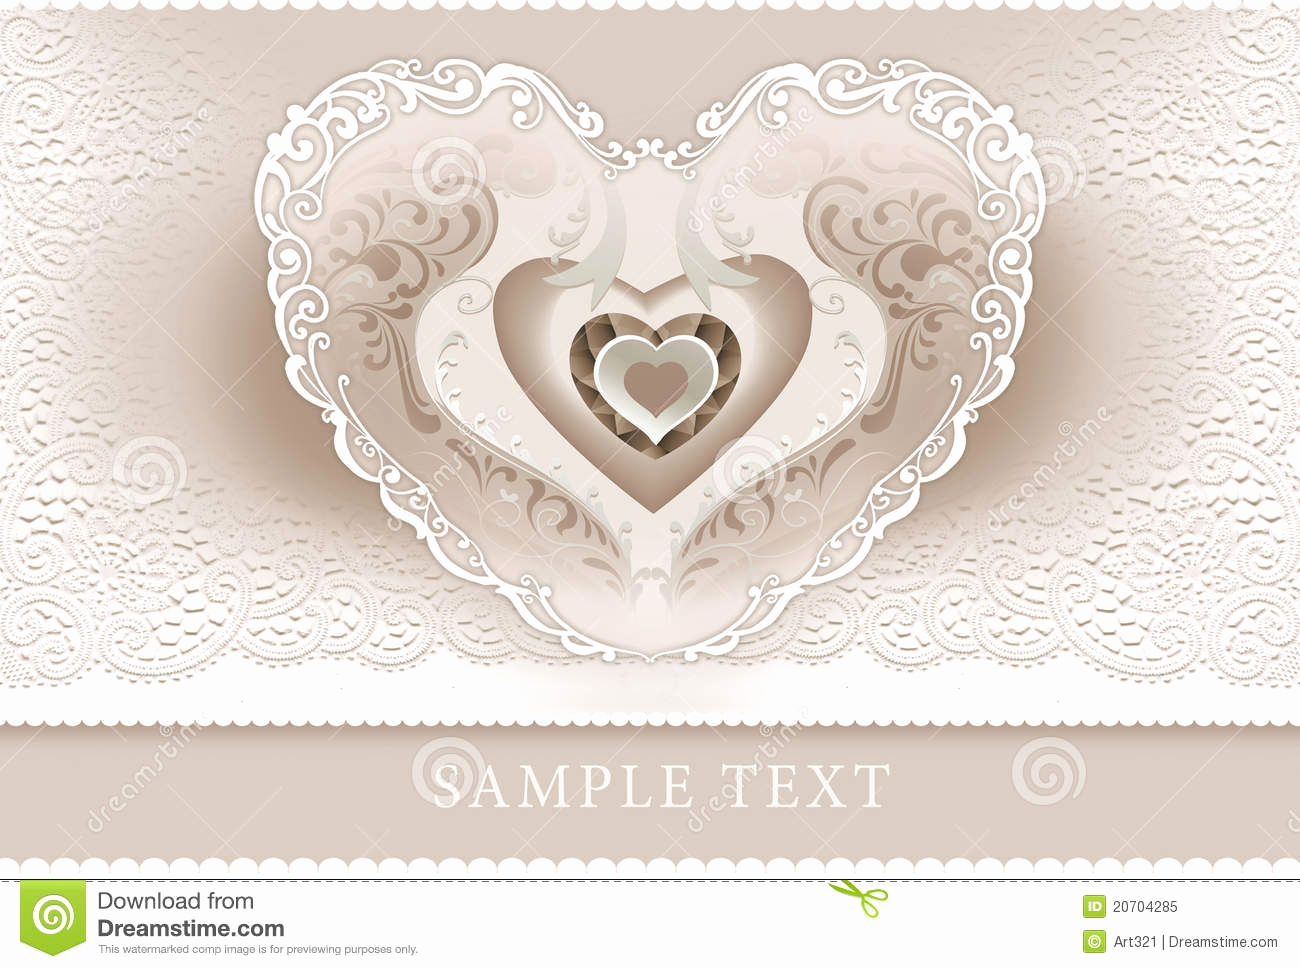 Wedding Invitation Frame Ideas Lovely Wedding Invitation Frame Heart Royalty Free Stock